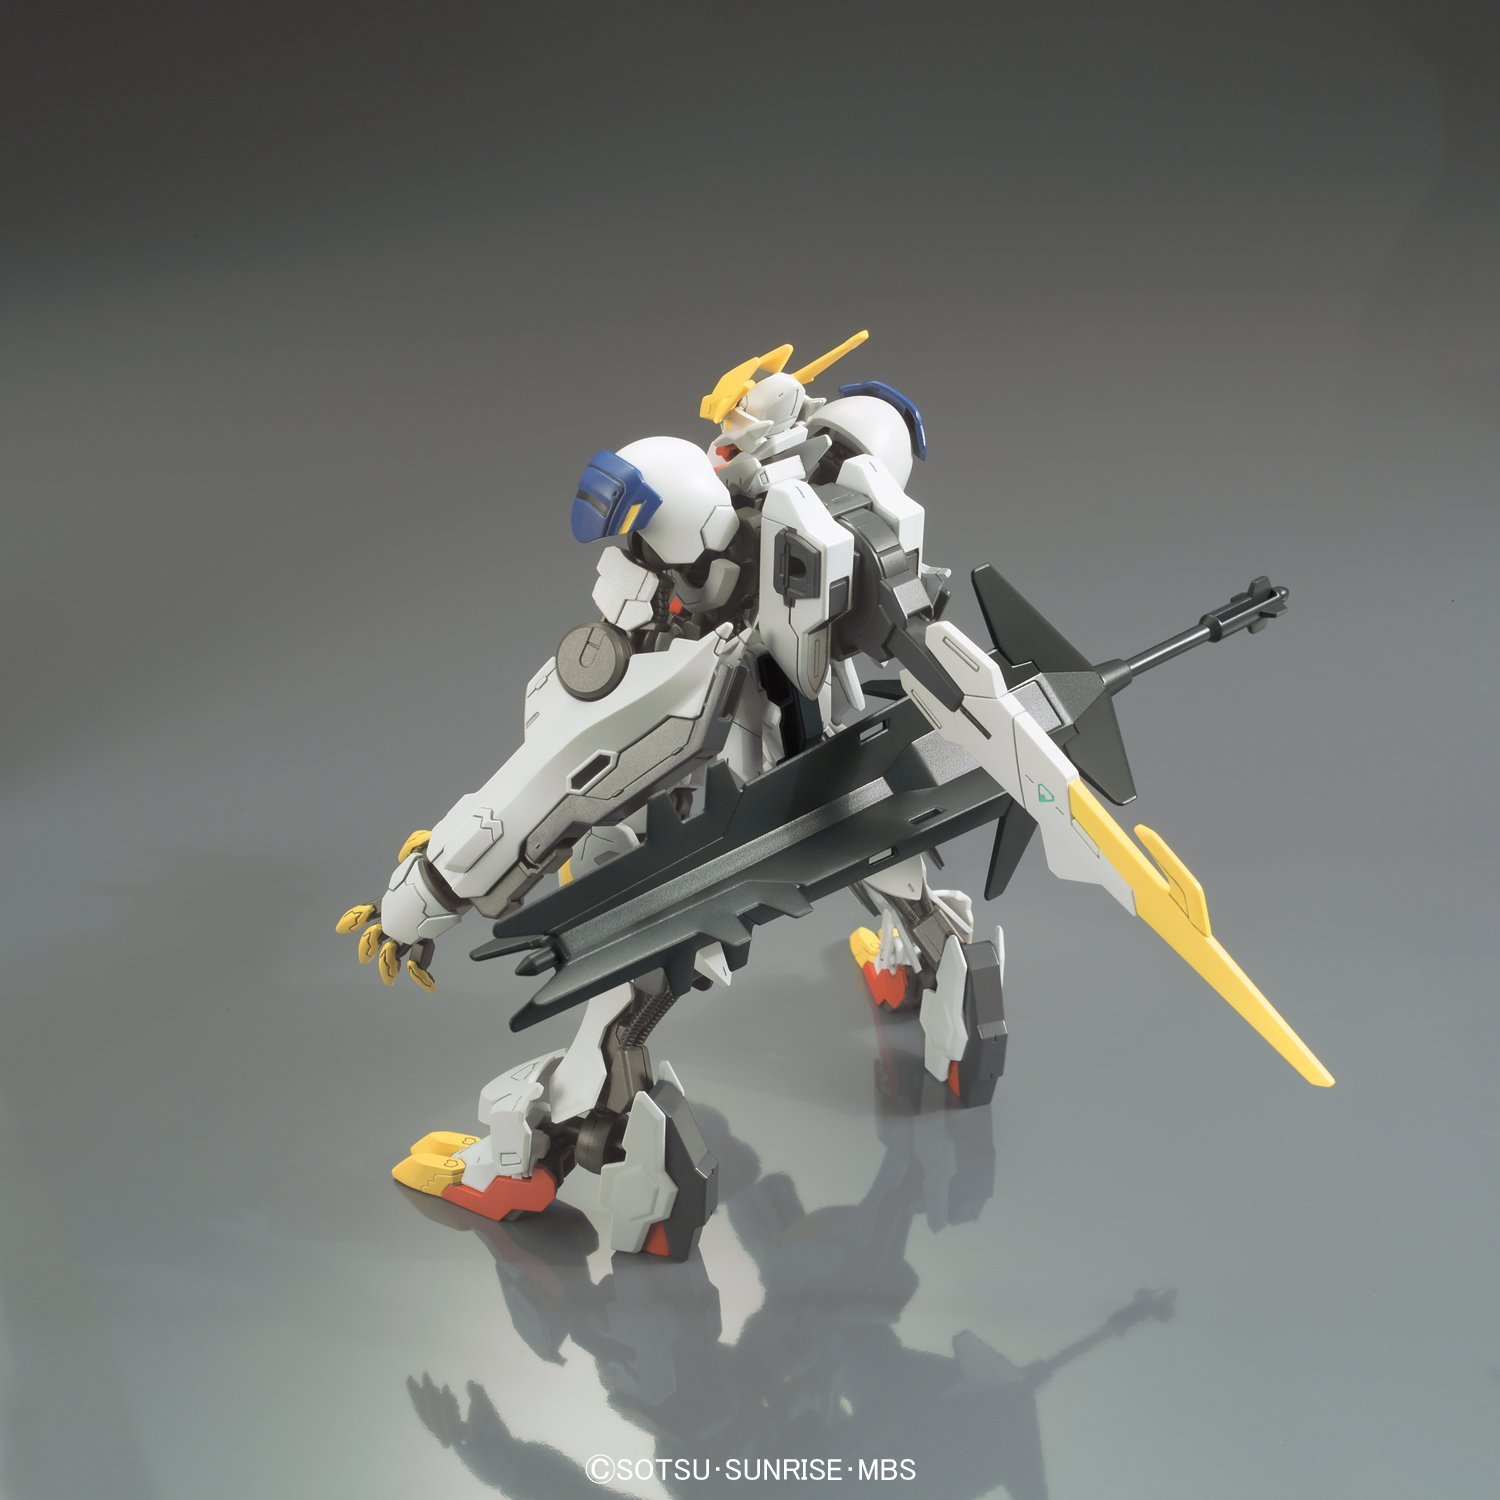 HG 1/144 Gundam Barbatos Lupus Rex - Release Info, Box art and Official Images